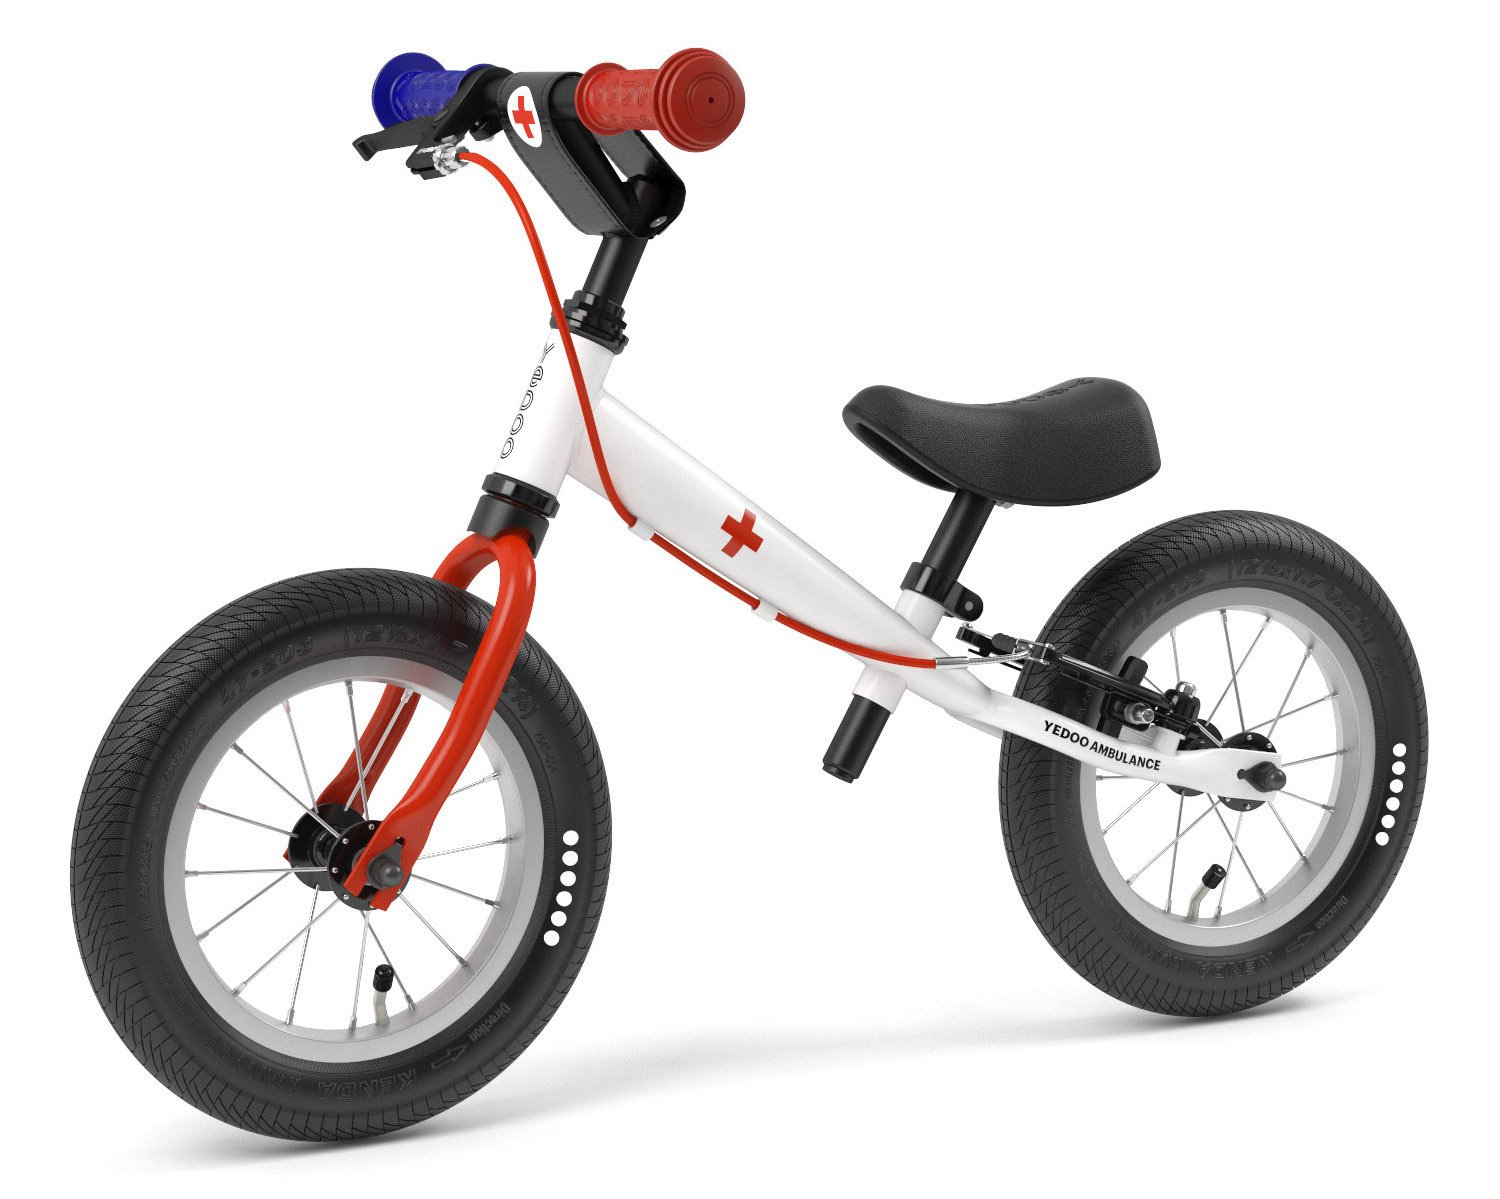 Top 11 Best Balance Bikes for Toddlers Reviews in 2020 6